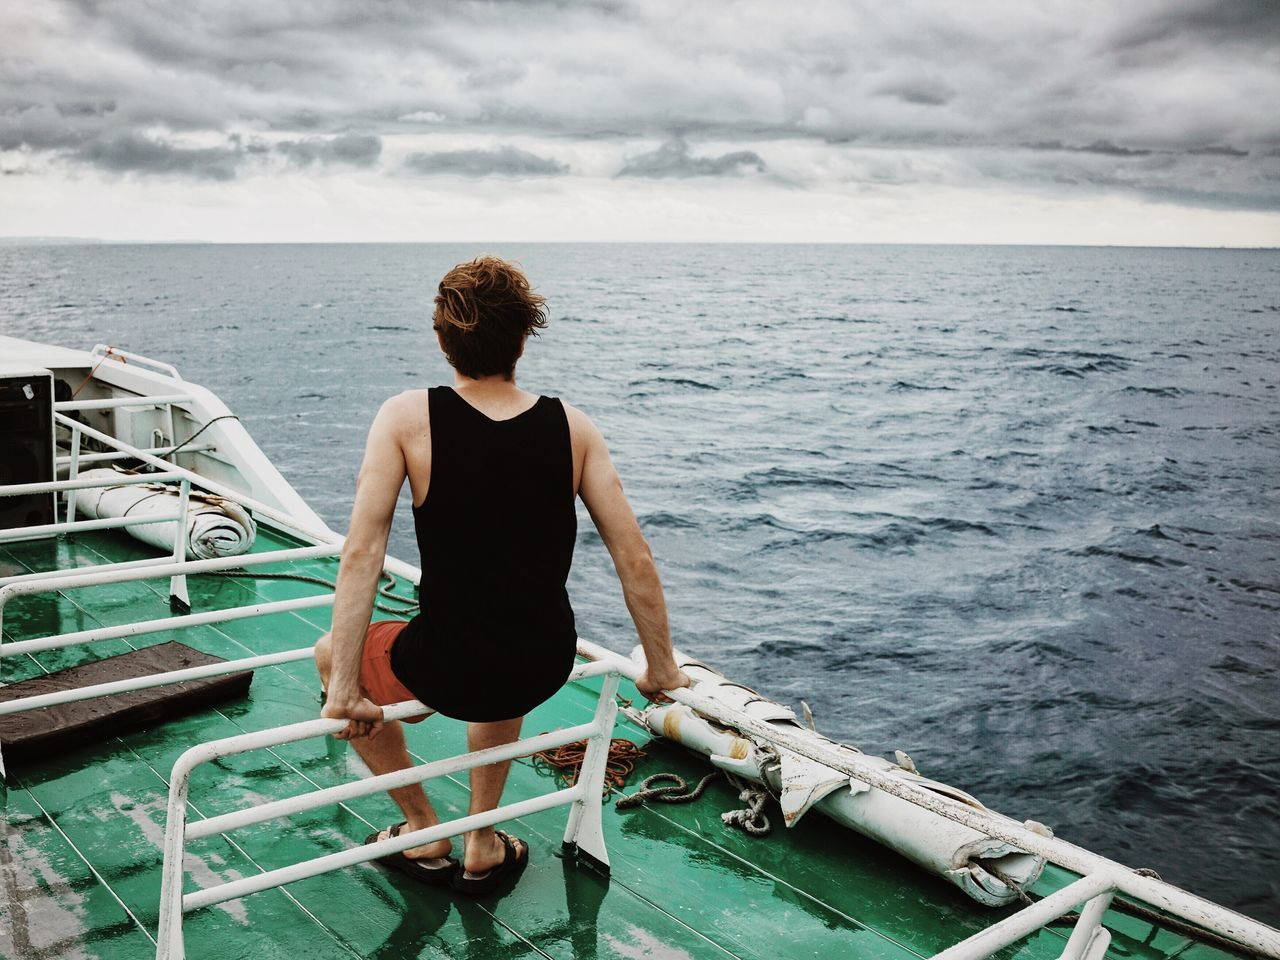 Rear view of man on boat at sea against cloudy sky